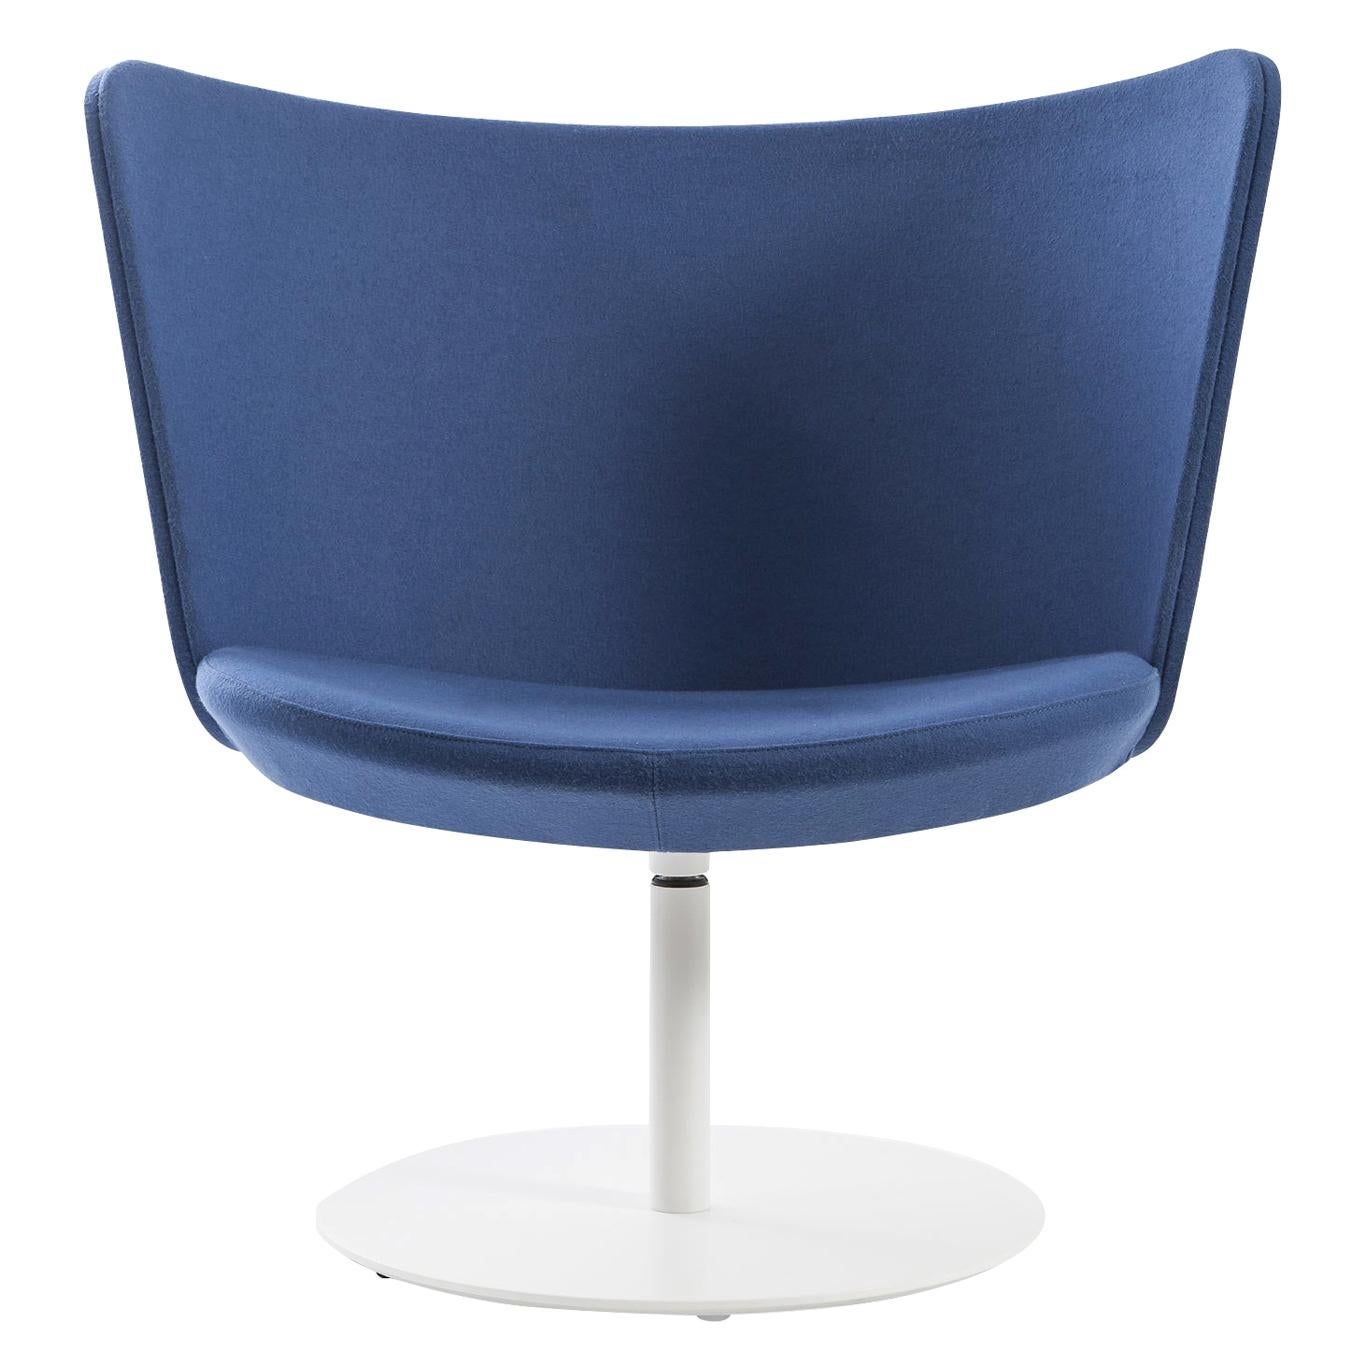 Johan Lindstèn Embroidery Simple Armchair in Fabric or Leather for Cappellini